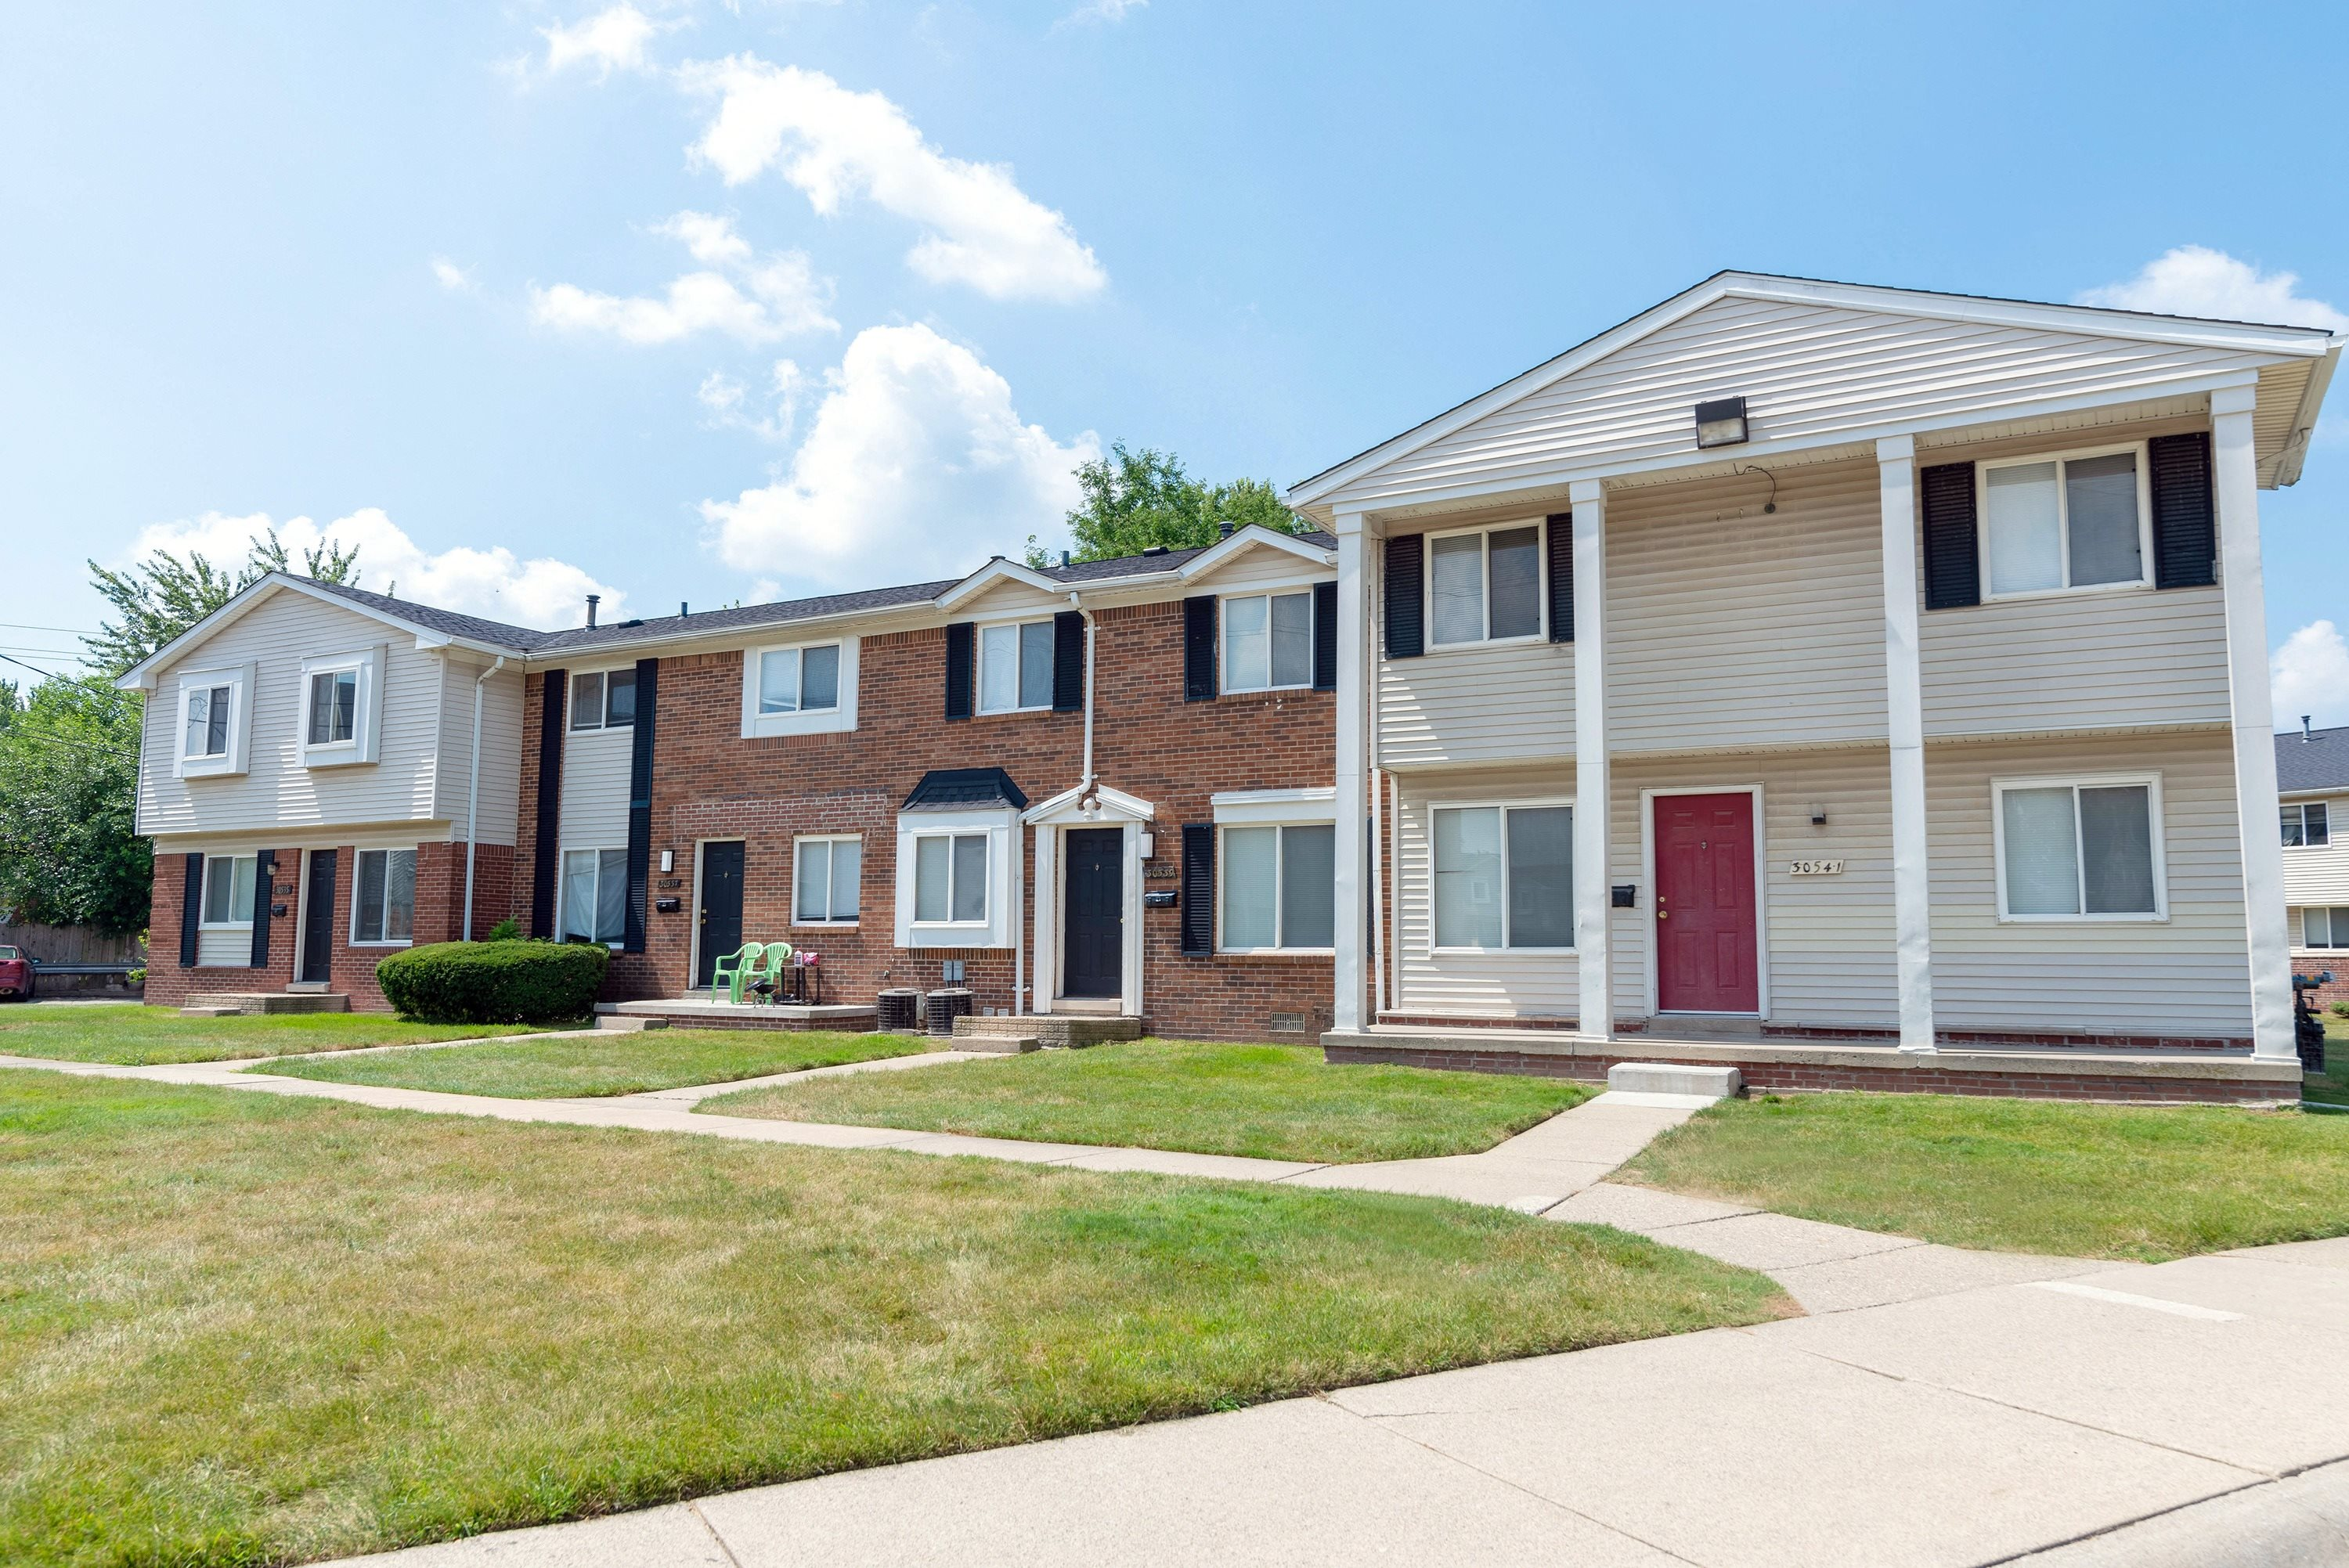 Gateway Townhomes in Romulus, MI